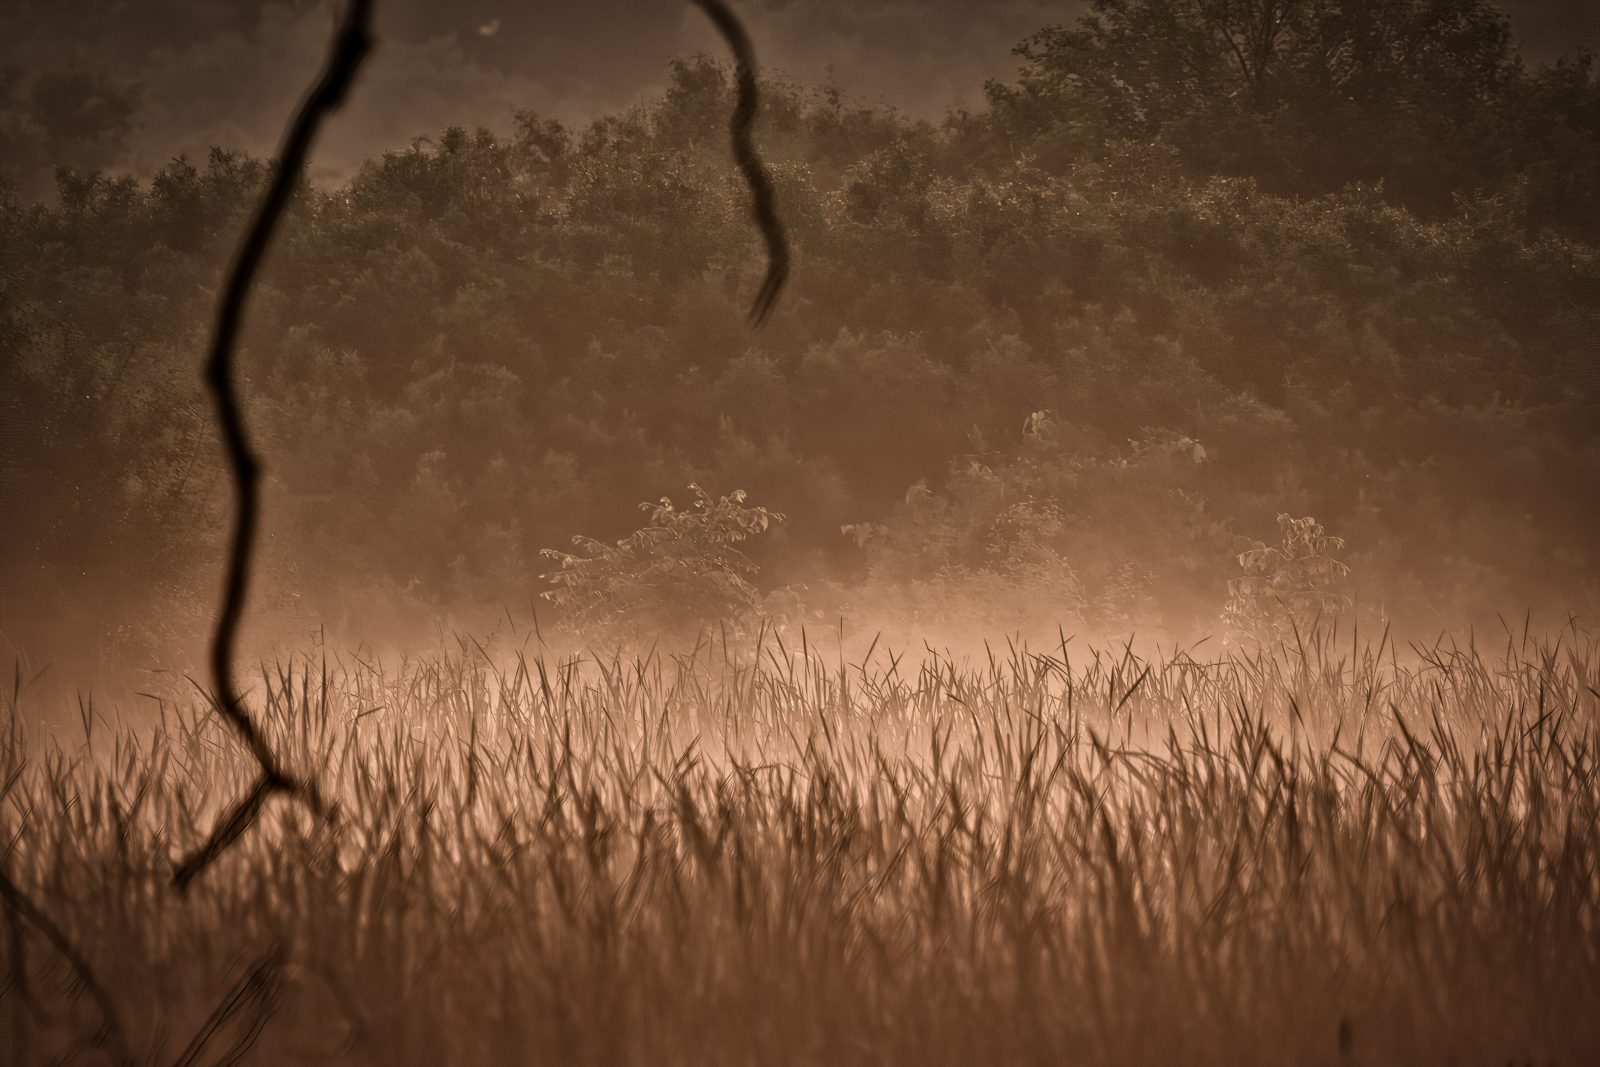 Wetland at Sunrise with Cattails and High Grass